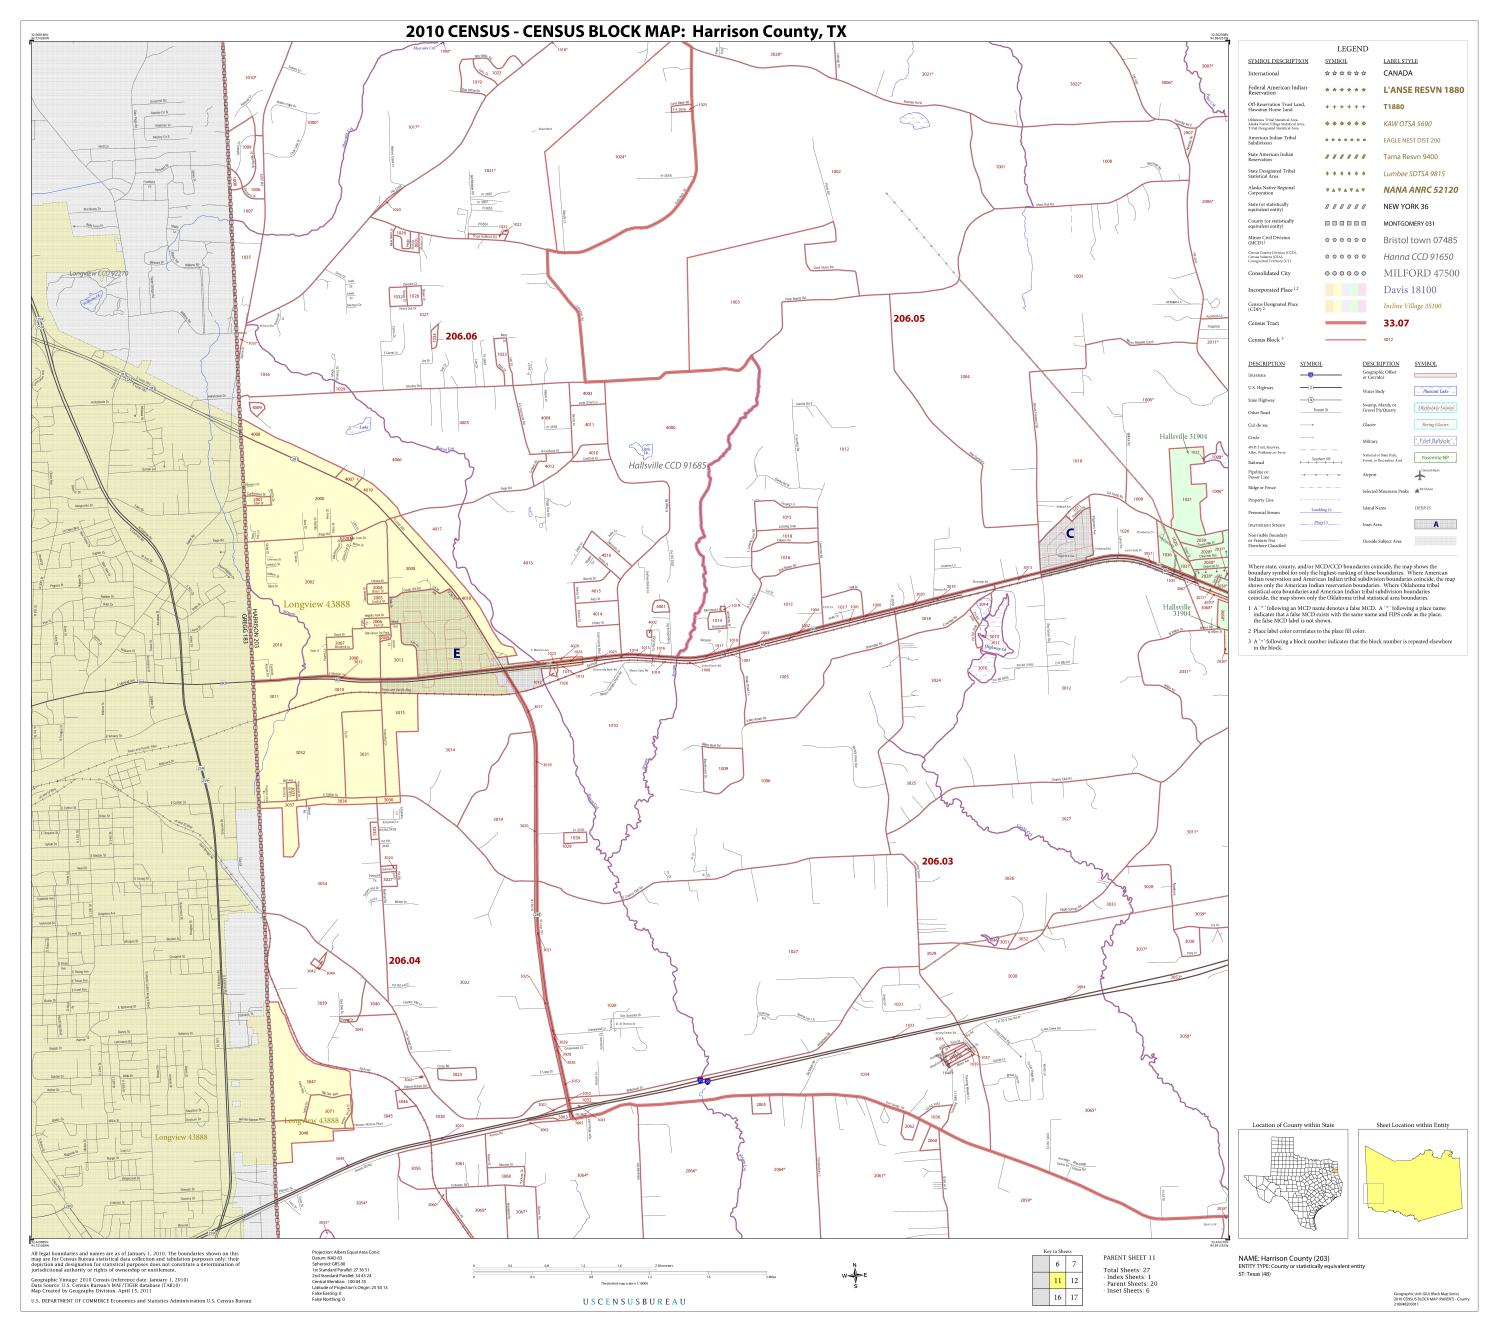 2010 Census County Block Map: Harrison County, Block 11                                                                                                      [Sequence #]: 1 of 1